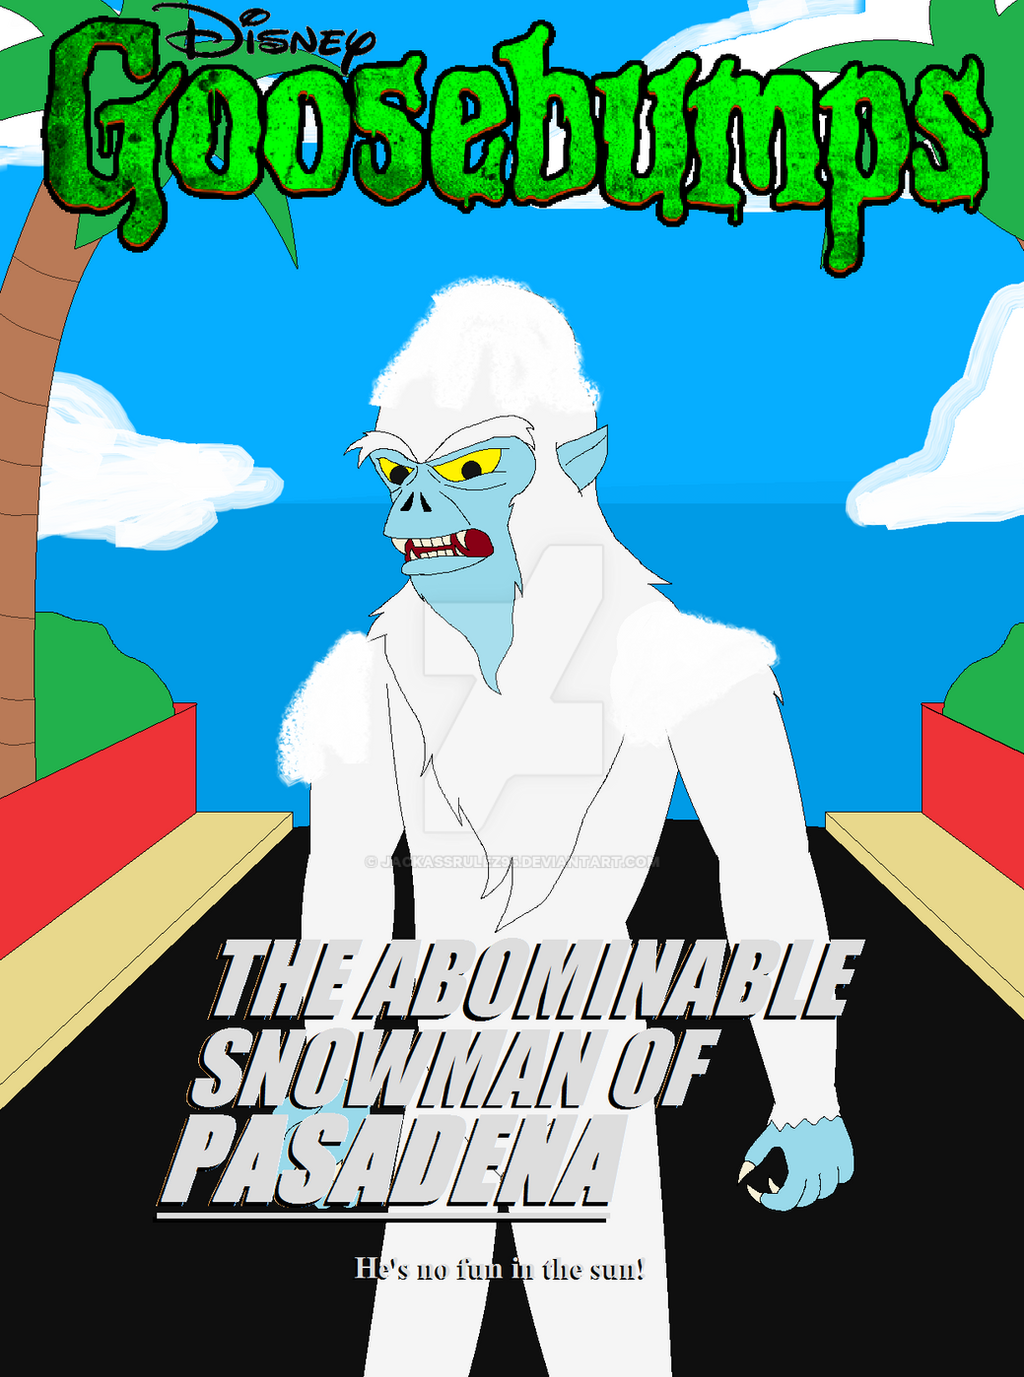 Disney's GB: The Abominable Snowman of Pasadena by ...